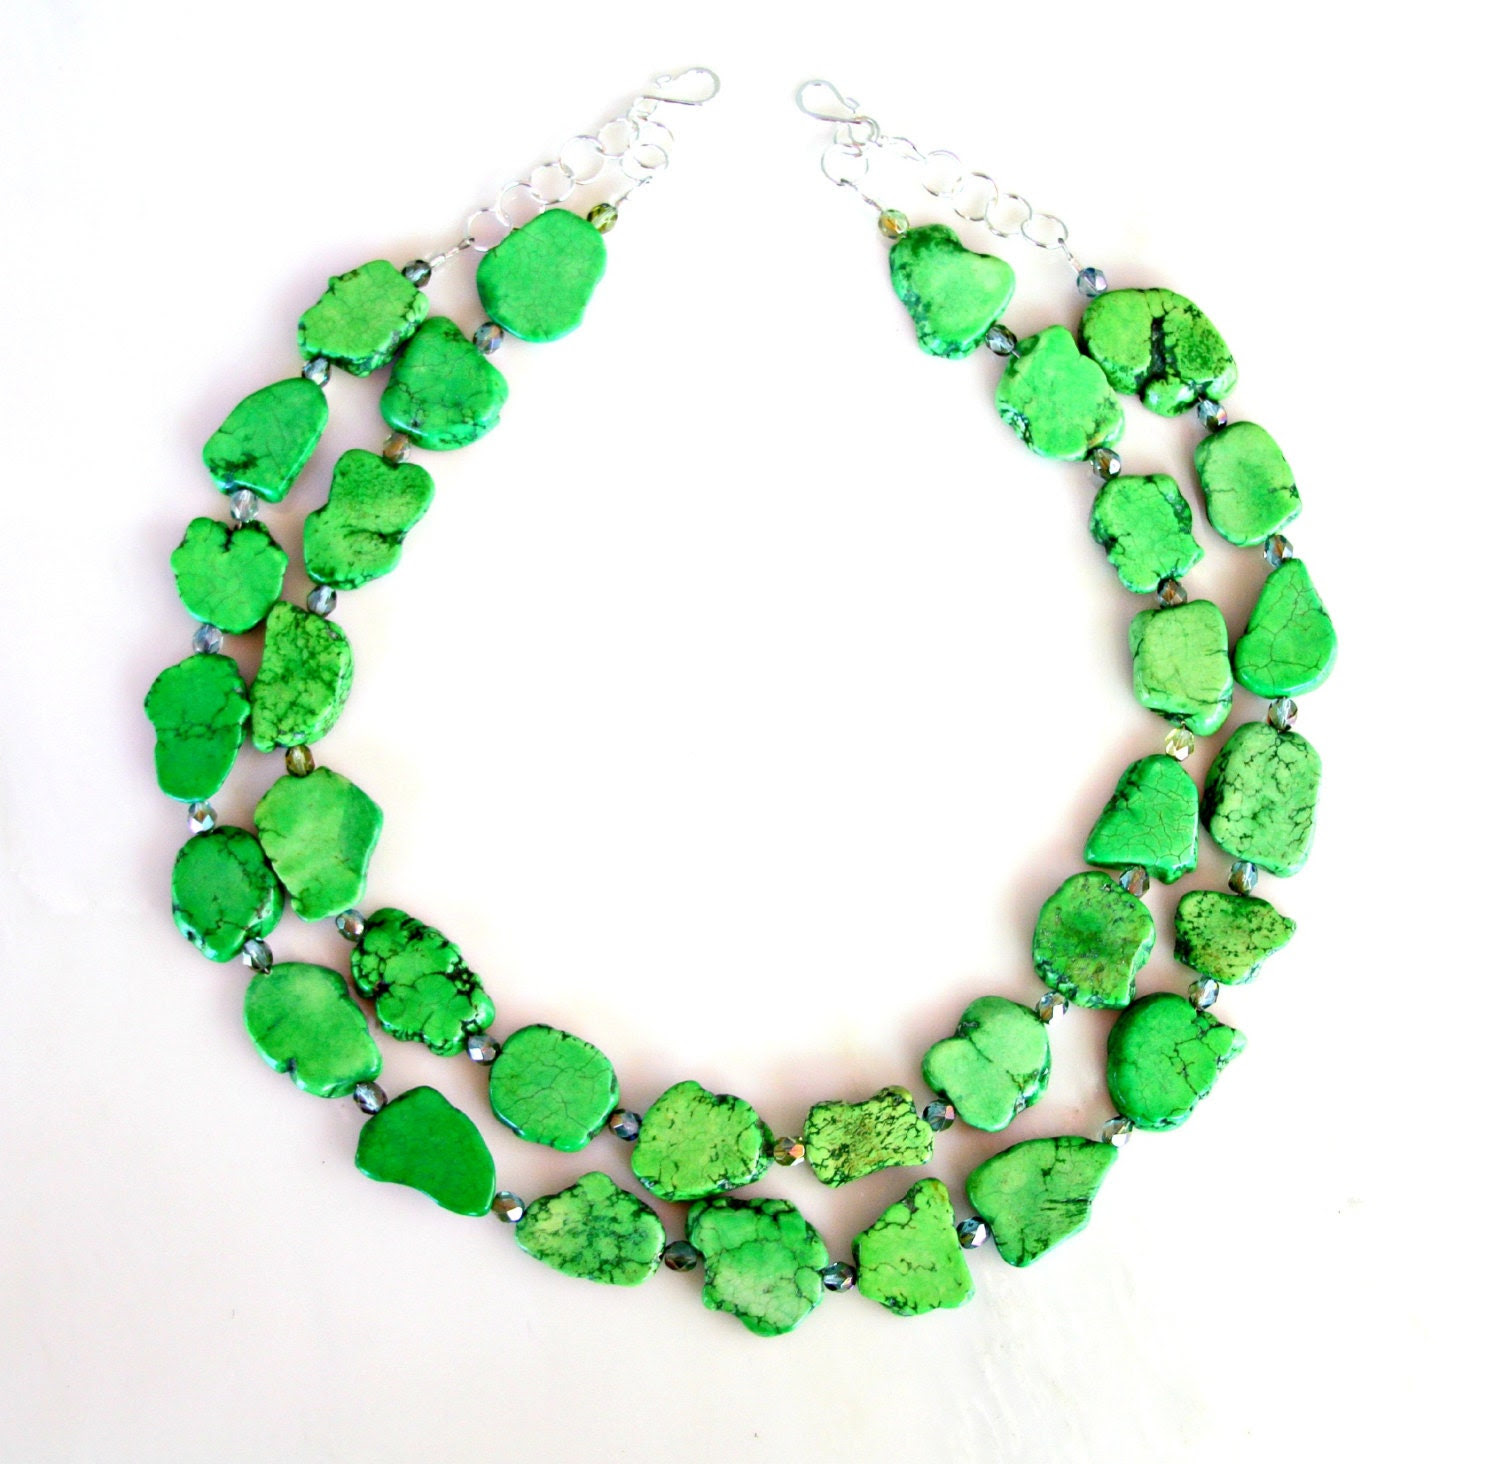 STATEMENT Necklace - Green Turquoise Chunky Slab Cluster Freeform Gems Tribal Goddess DOUBLE STRAND Necklace by Mei Faith